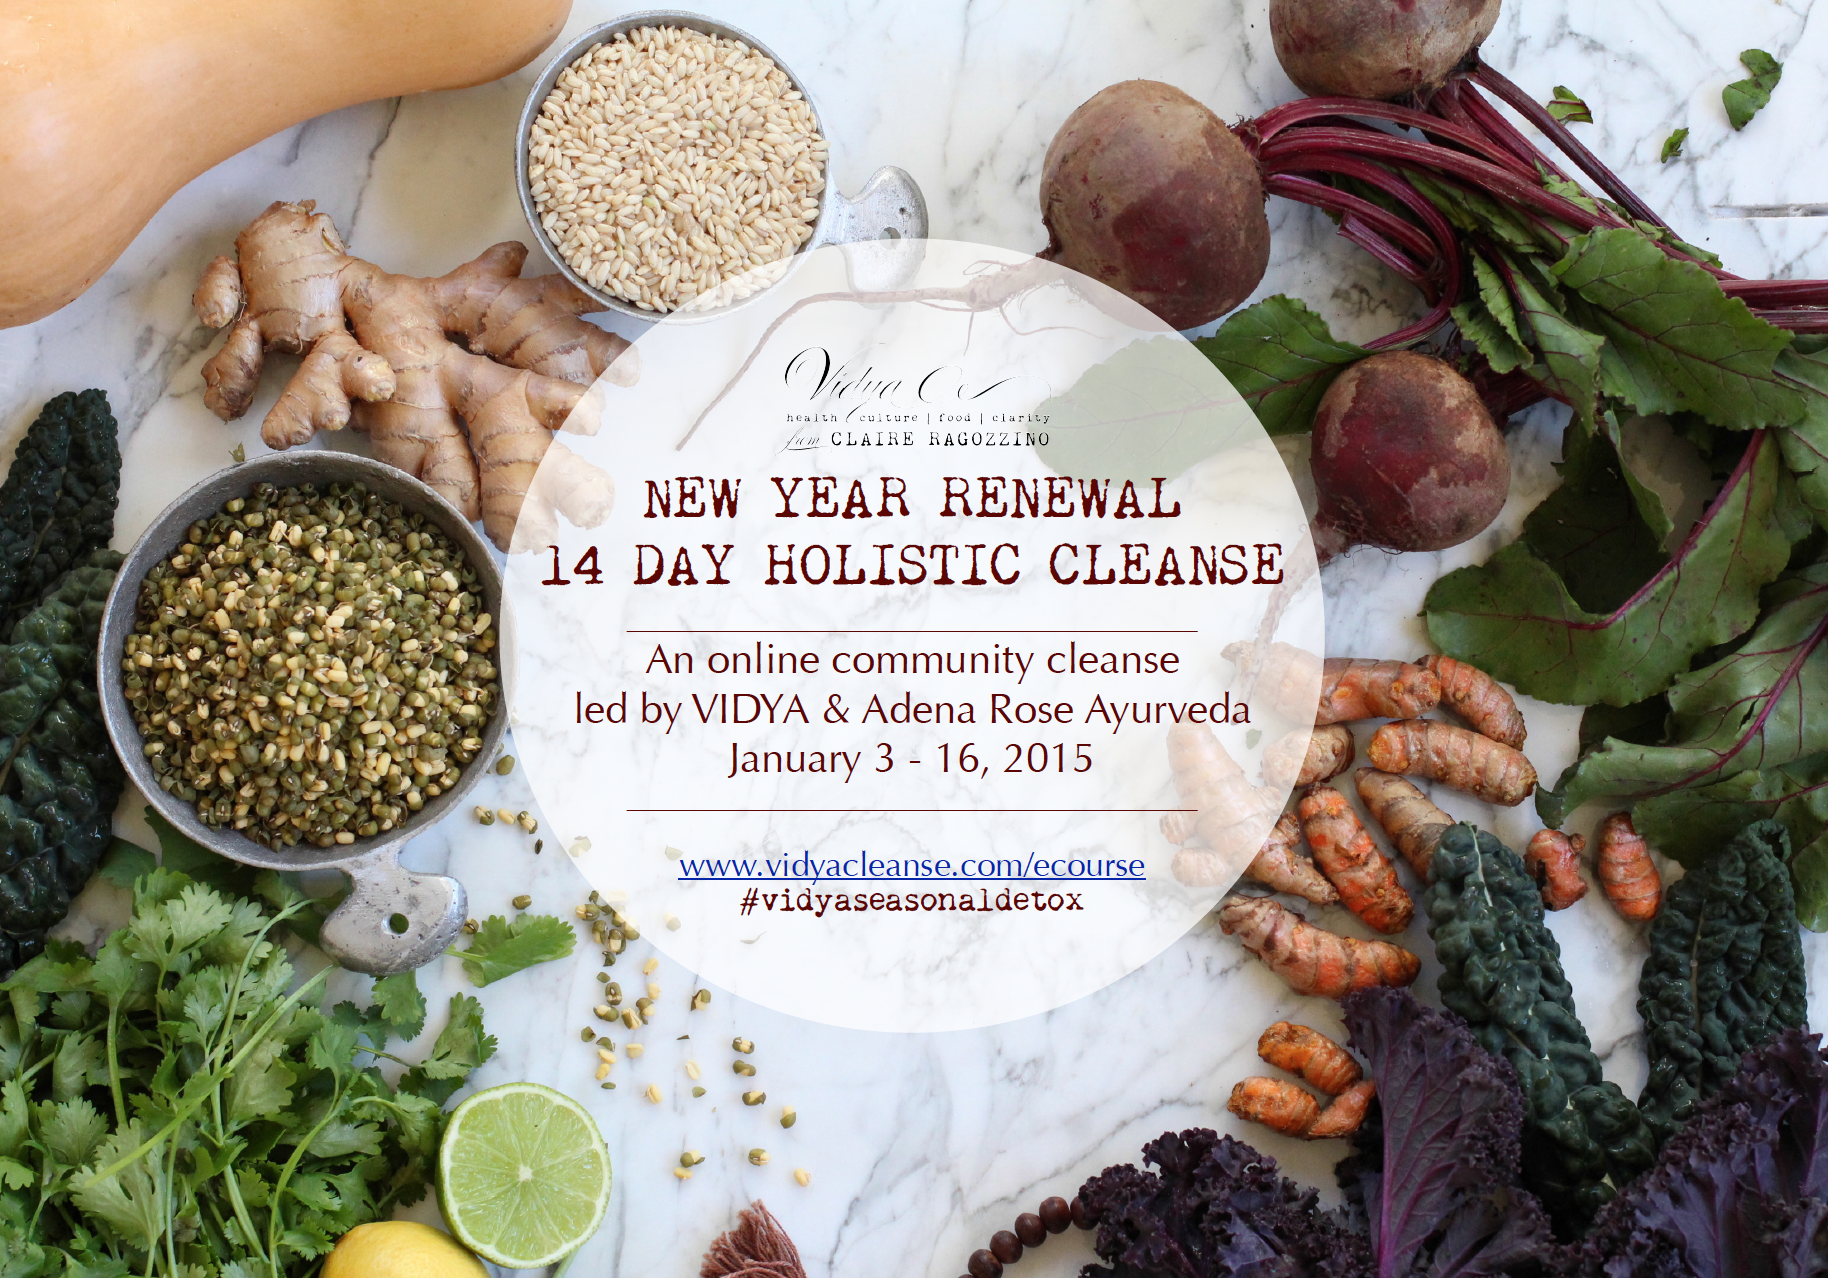 New Year Cleanse Promo